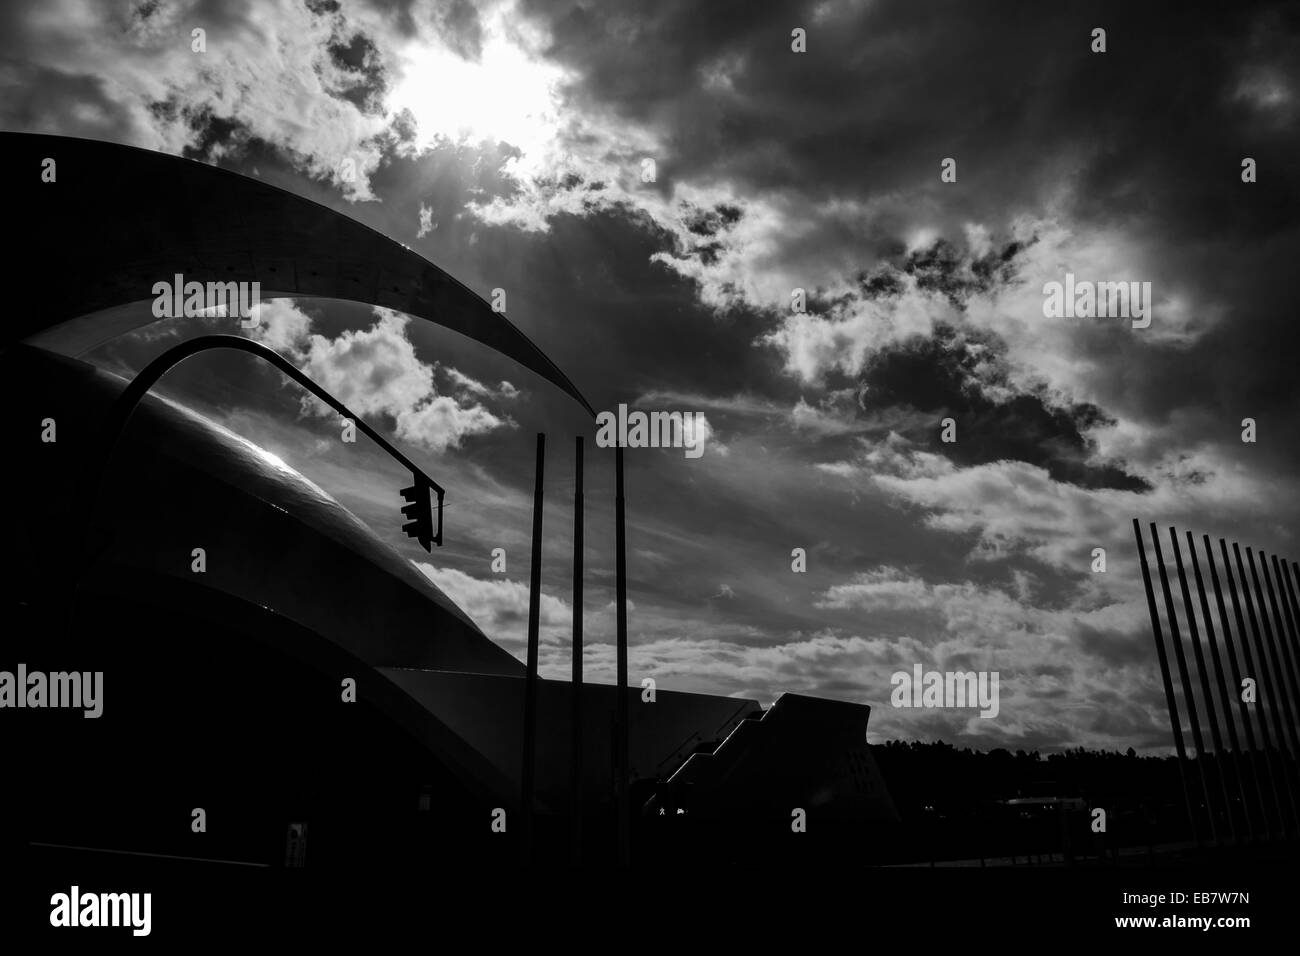 Abstract images of the auditorium in Santa Cruz de Tenerife, Canary Islands, Spain. - Stock Image